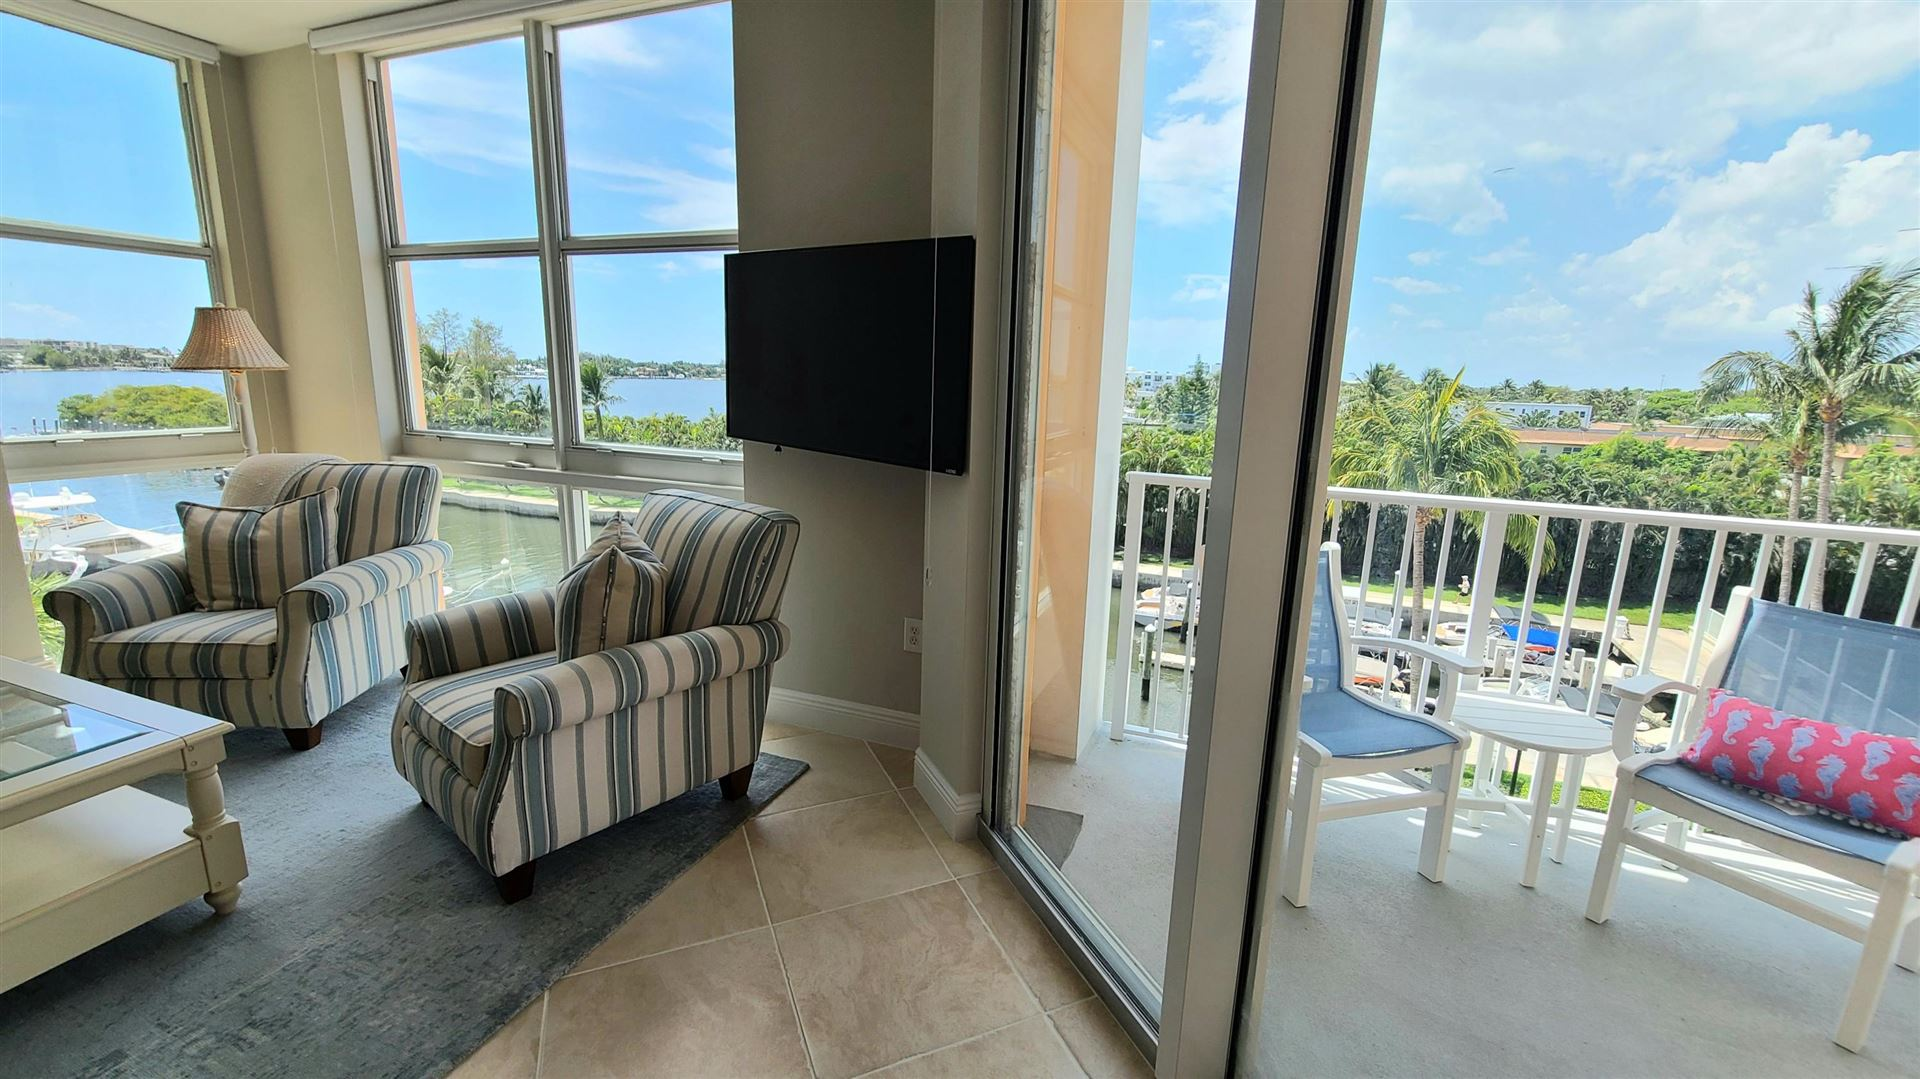 806 E Windward Way #423, Lantana, FL 33462 - MLS#: RX-10715493